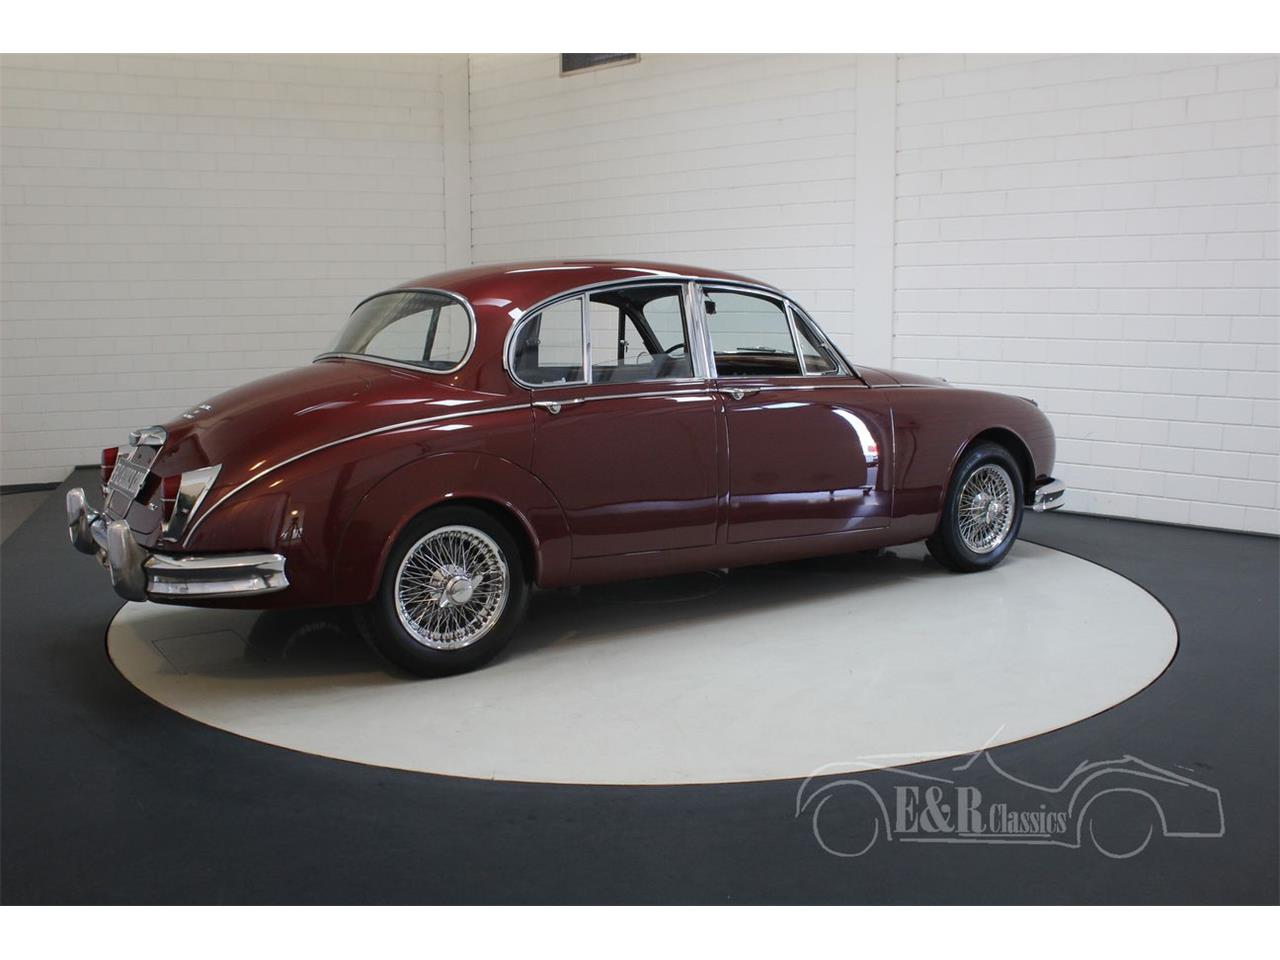 Large Picture of 1960 Mark II located in Waalwijk Noord-Brabant - $48,200.00 Offered by E & R Classics - QJZJ